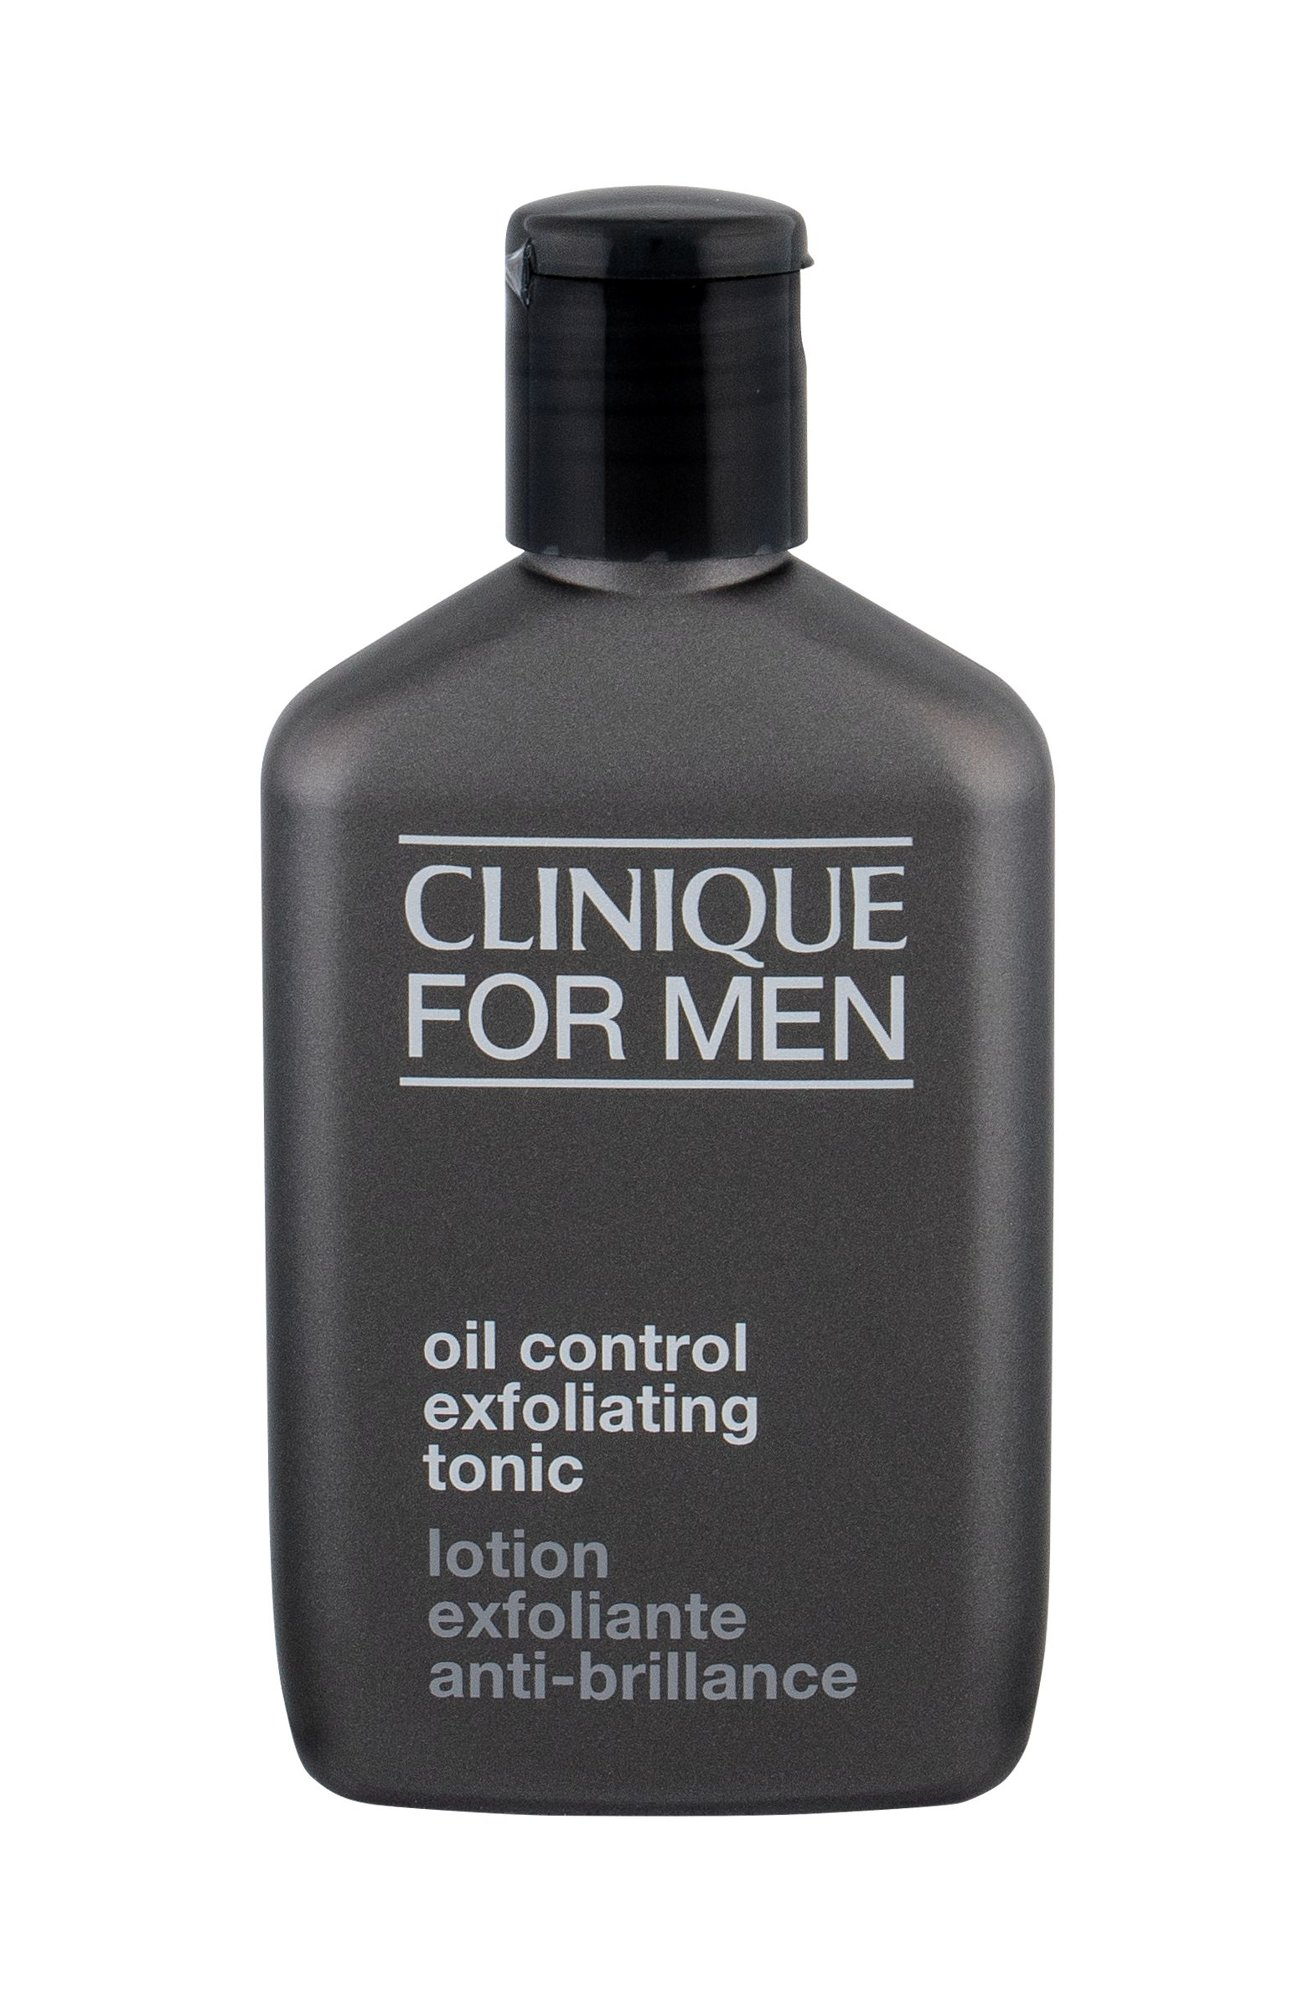 Clinique For Men Cleansing Water 200ml  Oil Control Exfoliating Tonic